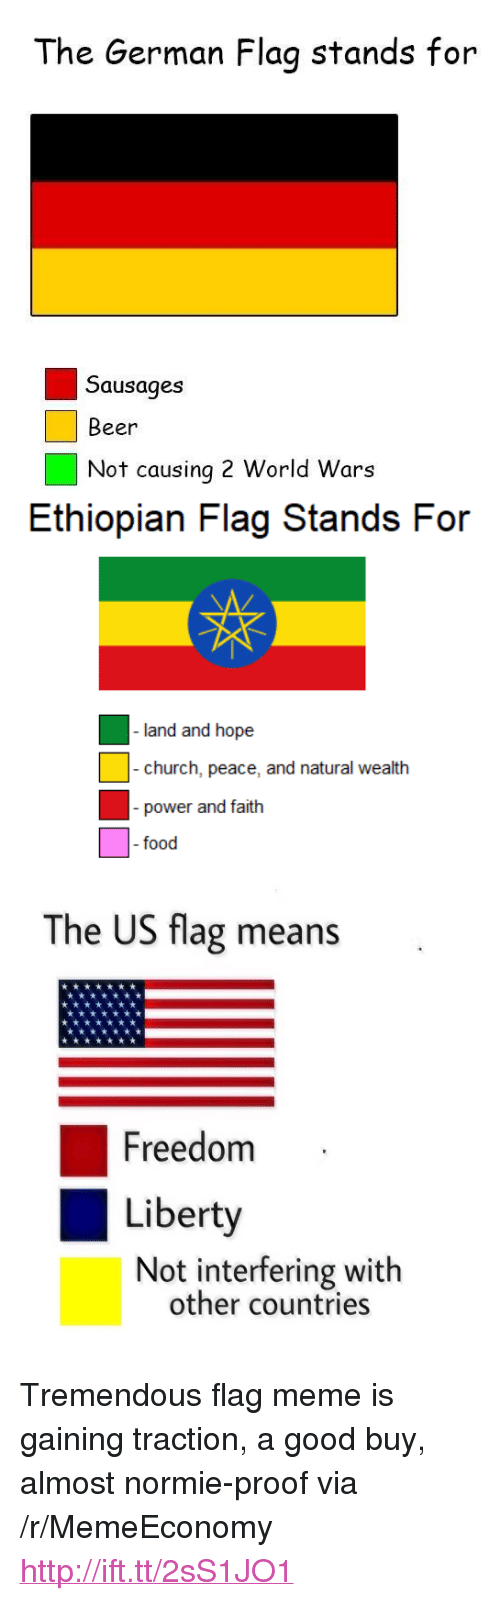 "Ethiopian: The German Flag stands for  Sausages  Beer  Not causing 2 World Wars  Ethiopian Flag Stands For  church, peace, ad natural wealth  - power and faith  food  The US flag means  Freedom  Liberty  Not interfering with  other countries <p>Tremendous flag meme is gaining traction, a good buy, almost normie-proof via /r/MemeEconomy <a href=""http://ift.tt/2sS1JO1"">http://ift.tt/2sS1JO1</a></p>"